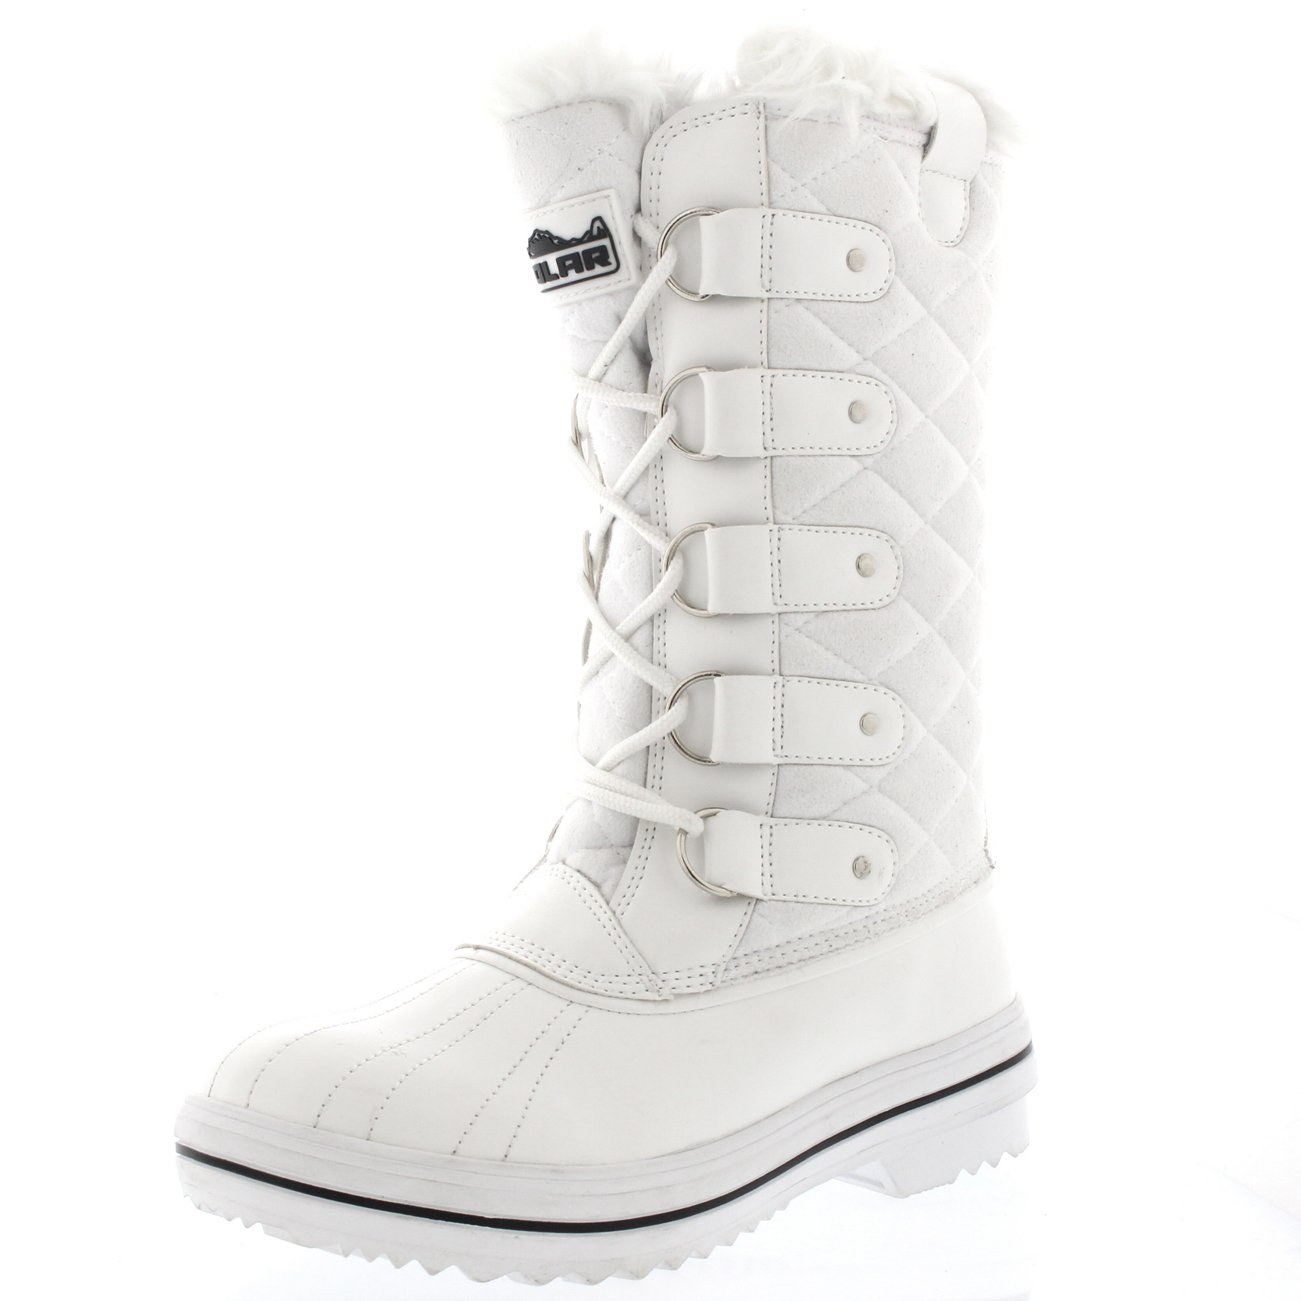 Polar Products Womens Snow Boot Quilted Tall Winter Snow Waterproof Warm Rain Boot - 9 - WHS40 YC0004